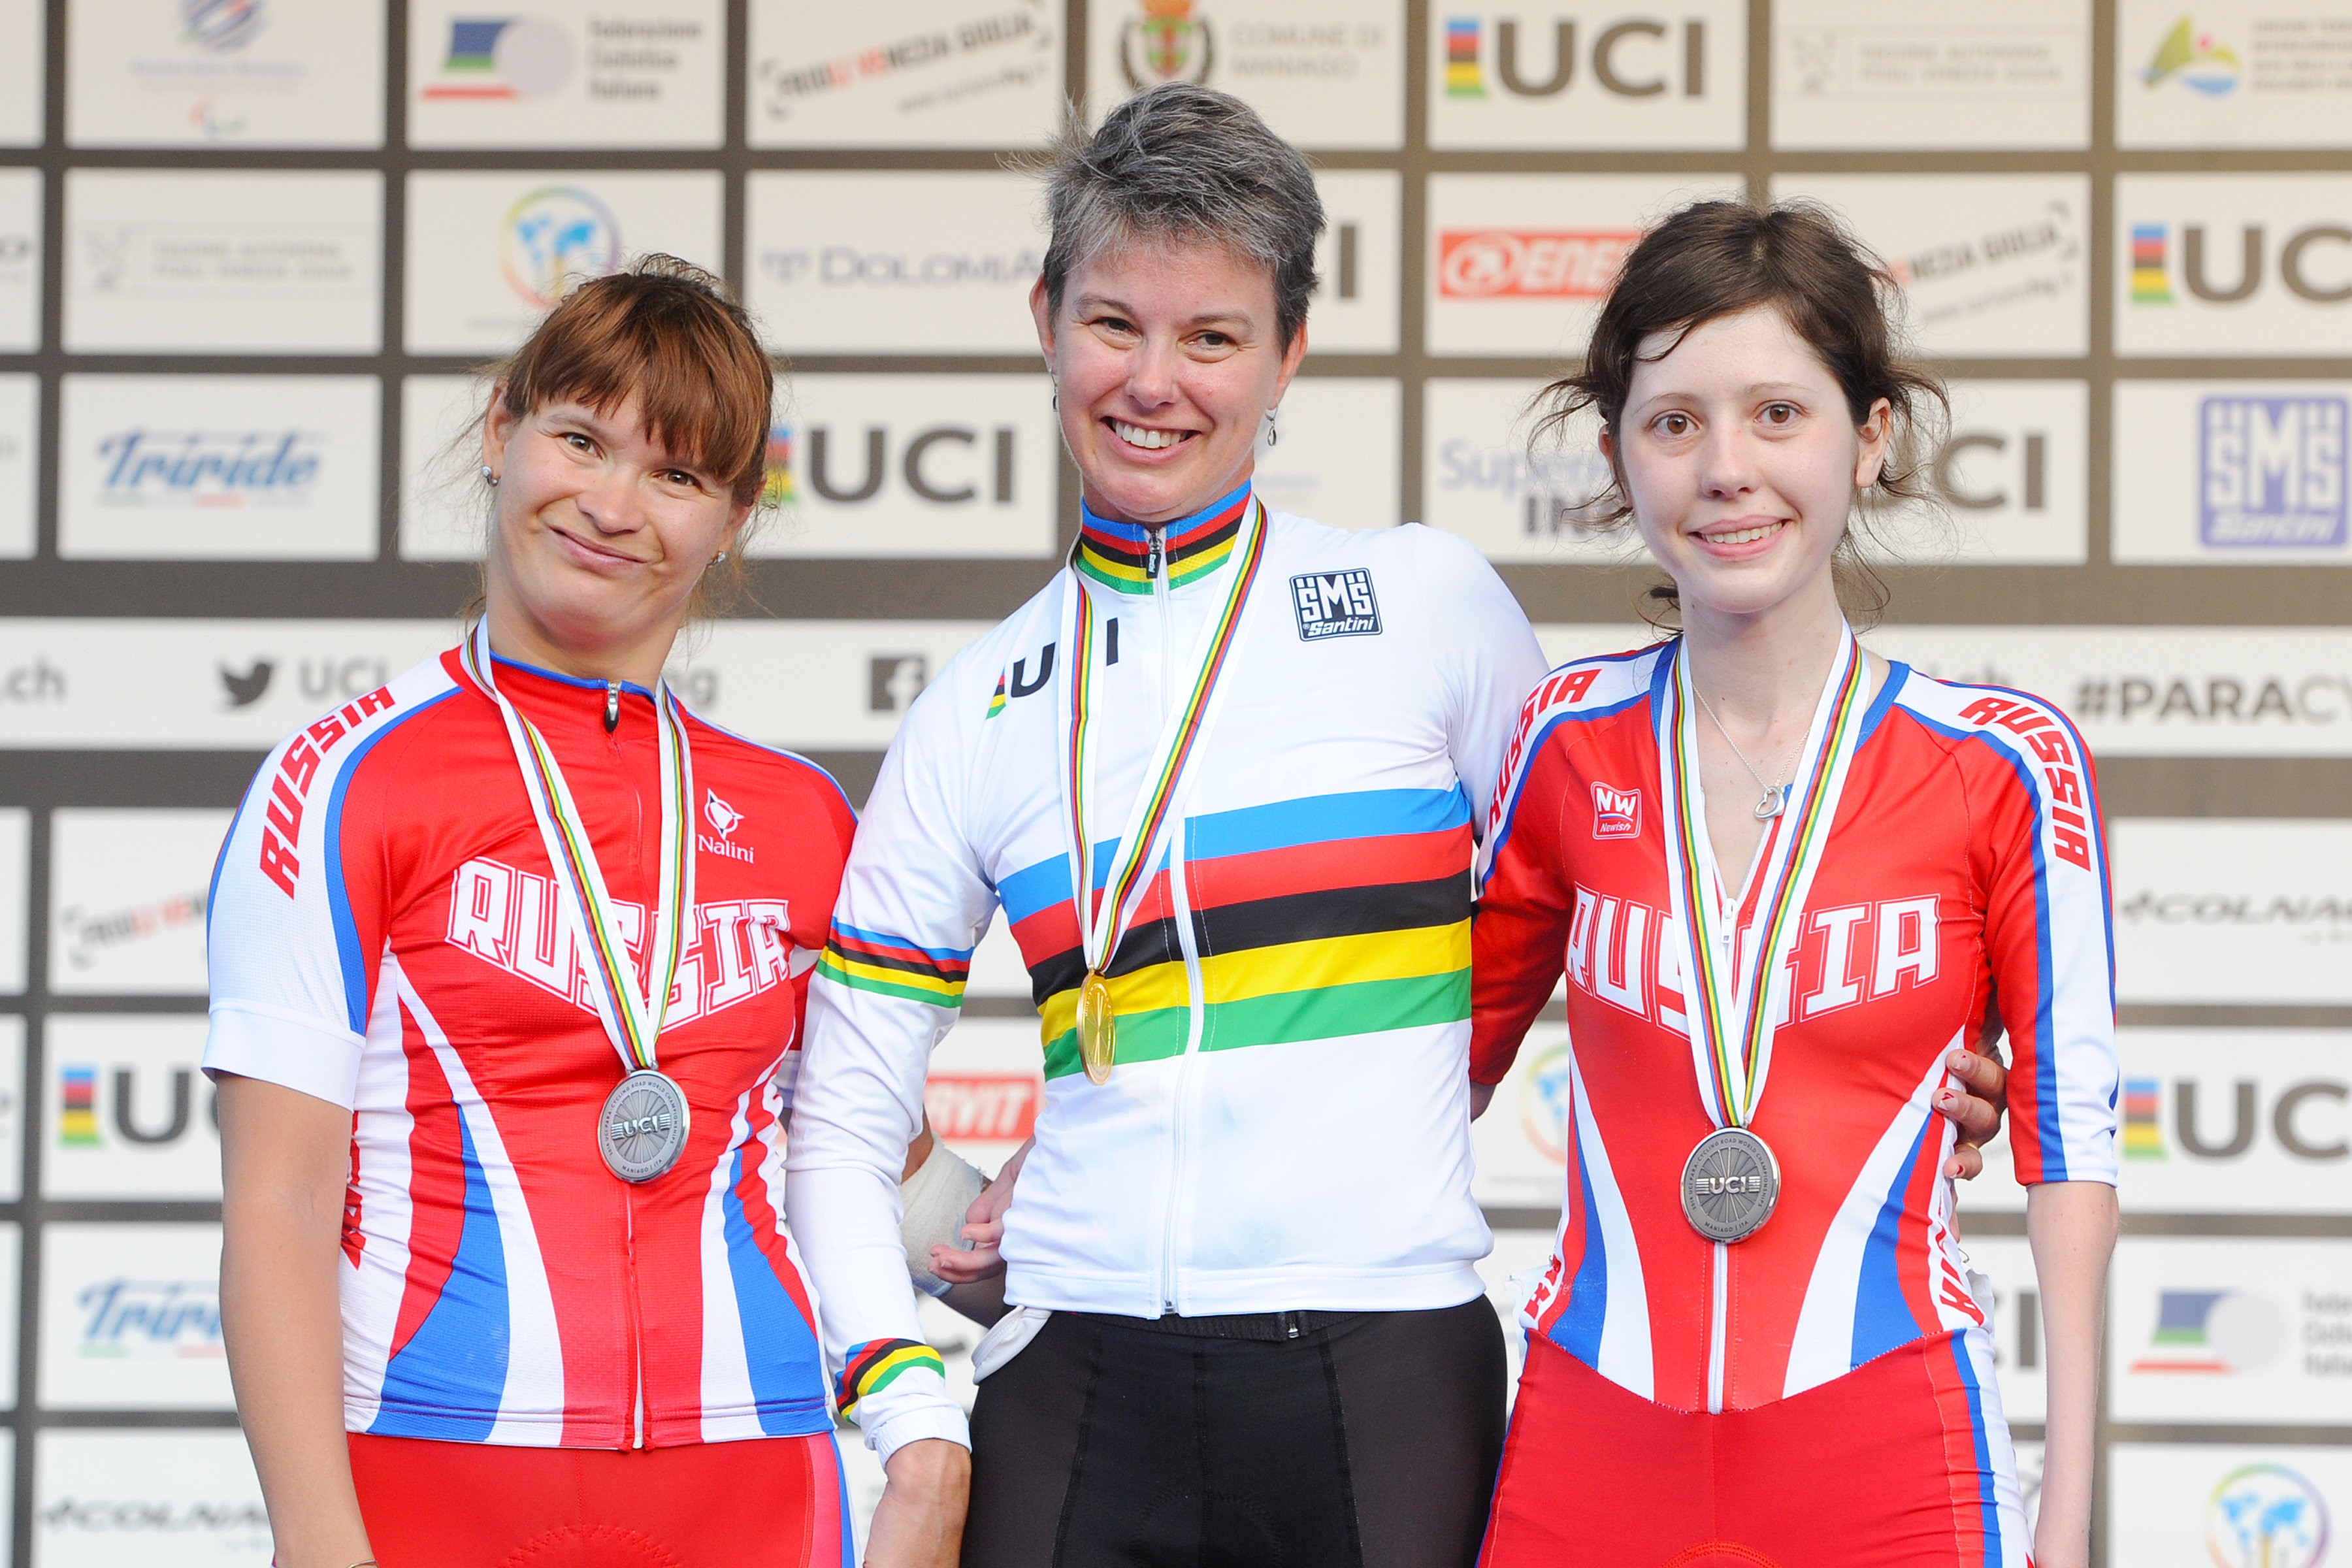 Shelley Gautier in her rainbow jersey at the UCI Para Cycling Road World Championships